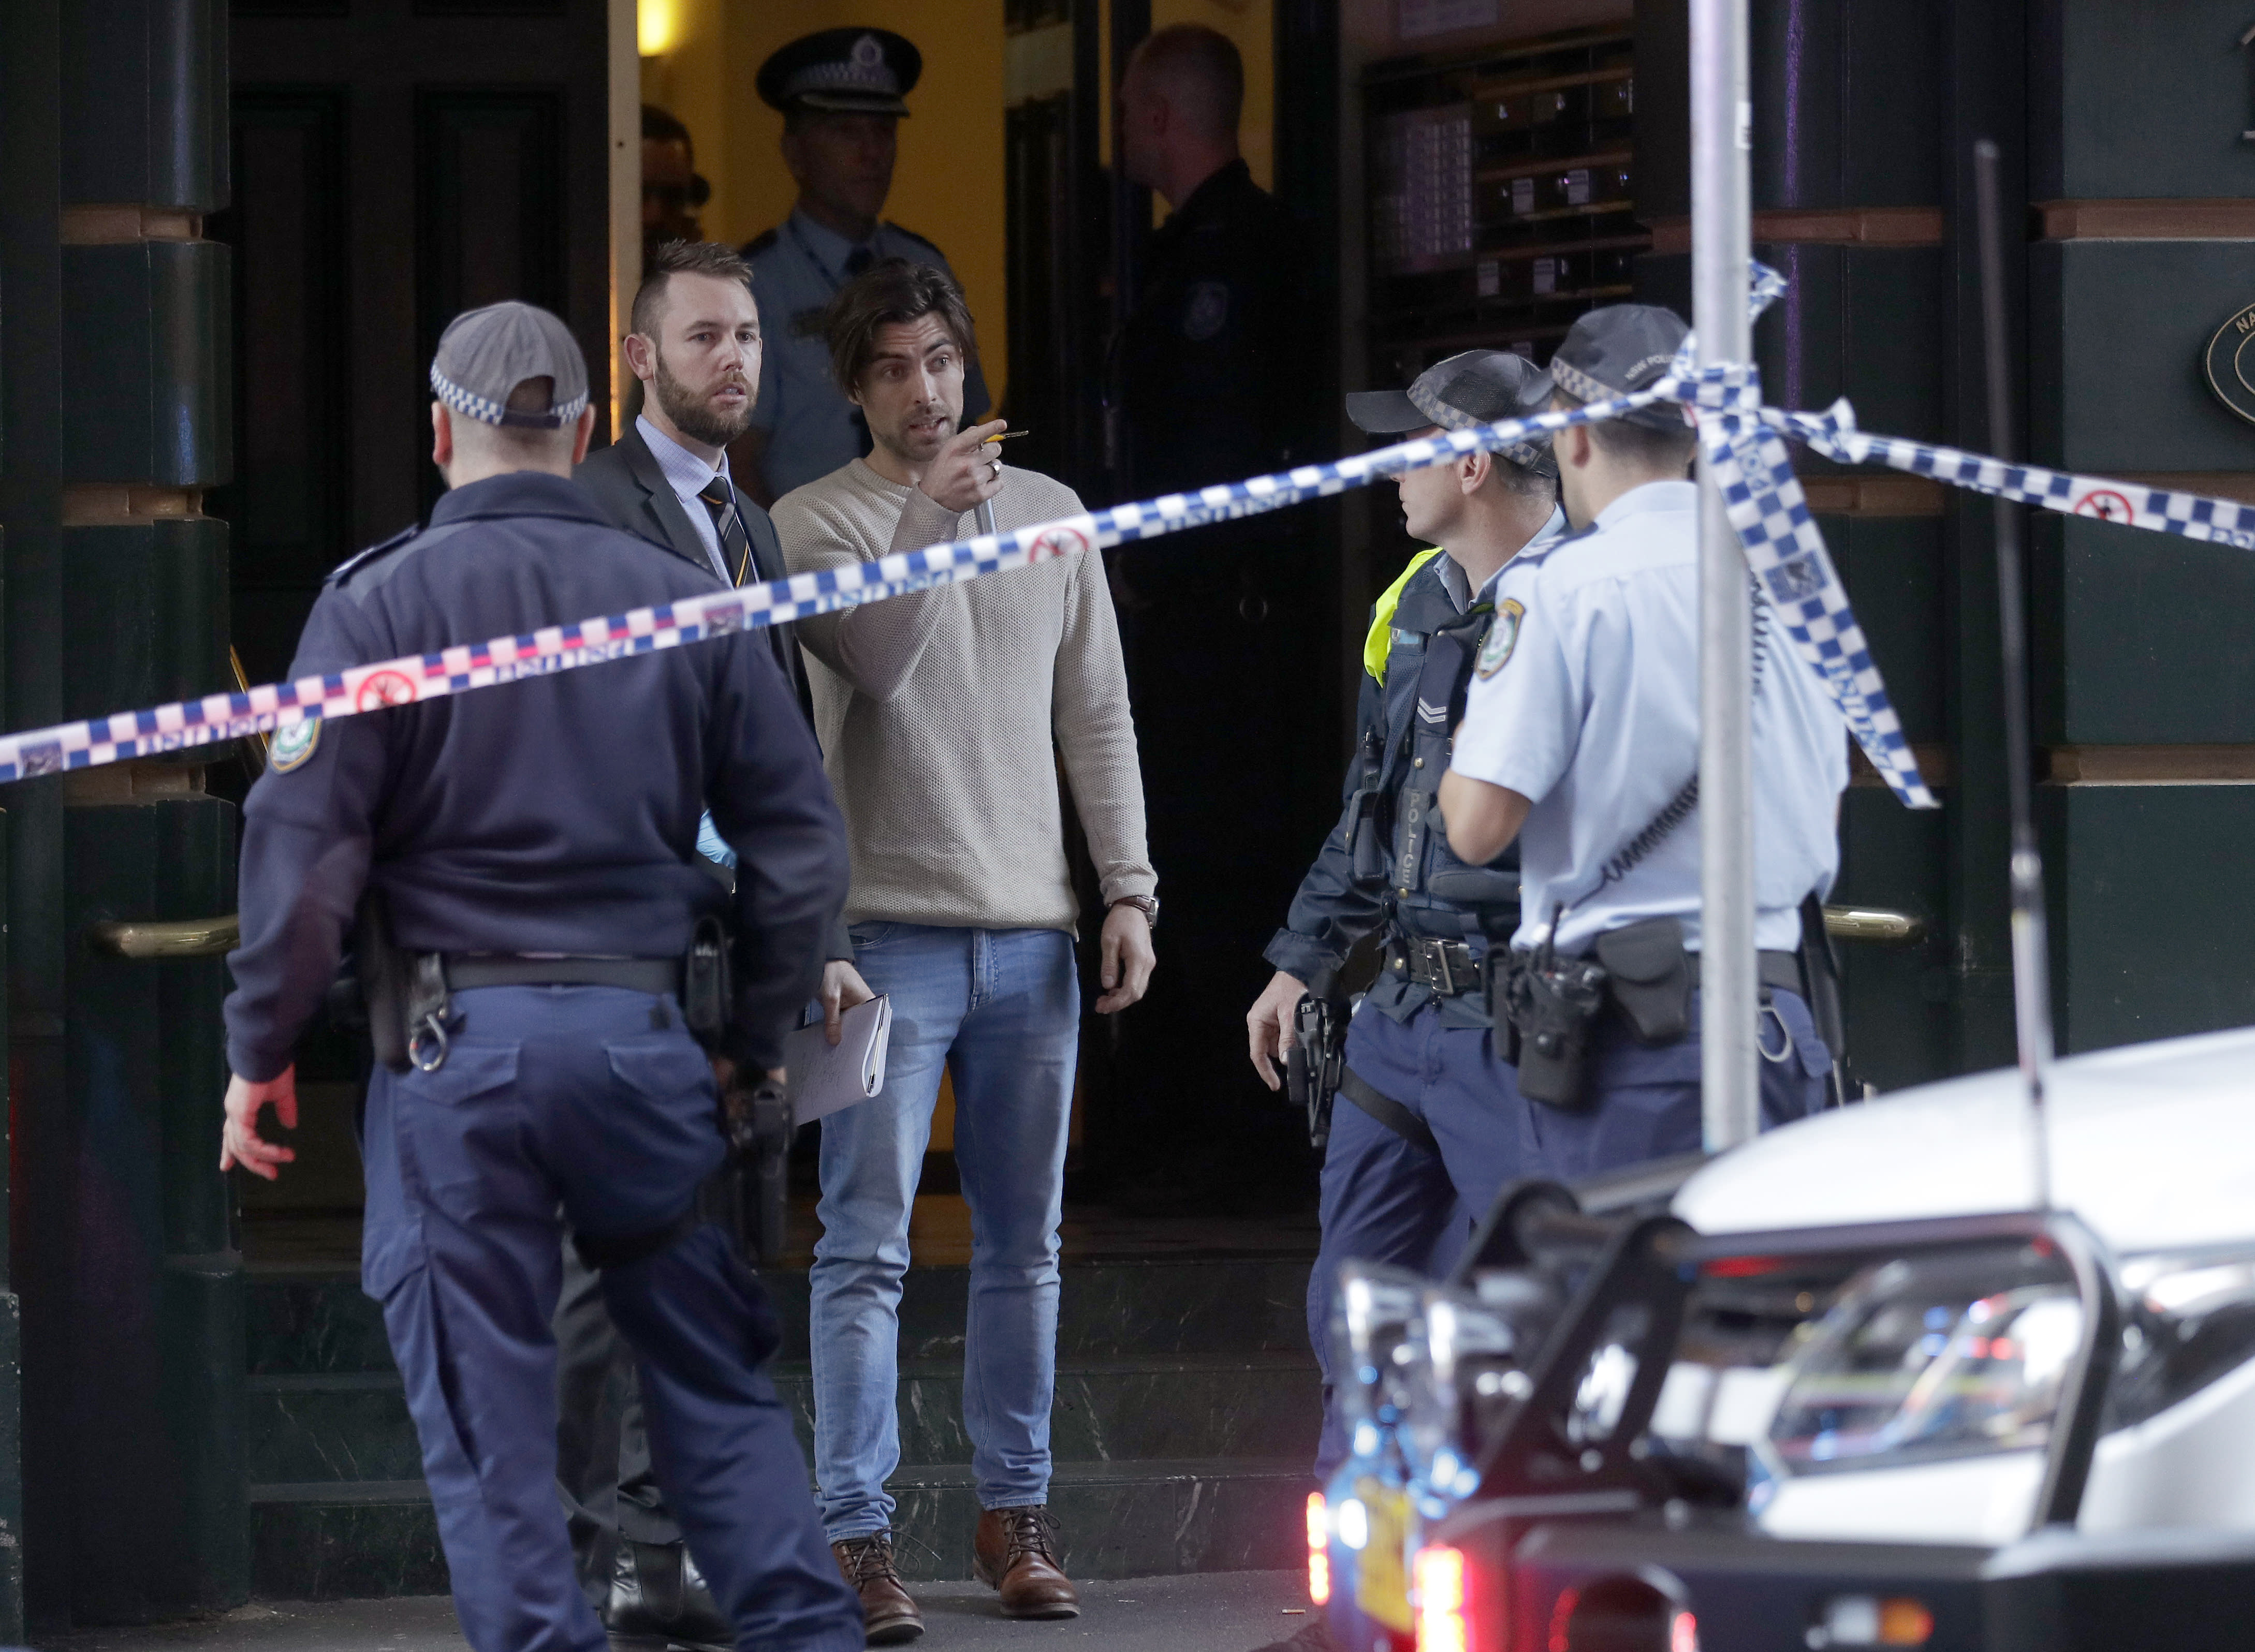 """A man, center, points as he assists police at a building where a person has been found deceased after a man attempted to stab multiple people in Sydney, Australia, Tuesday, Aug. 13, 2019. Police and witnesses say a knife-wielding man yelling """"Allahu akbar,"""" or """"God is great,"""" has attempted to stab several people before being arrested, with one person taken to a hospital. (AP Photo/Rick Rycroft)"""